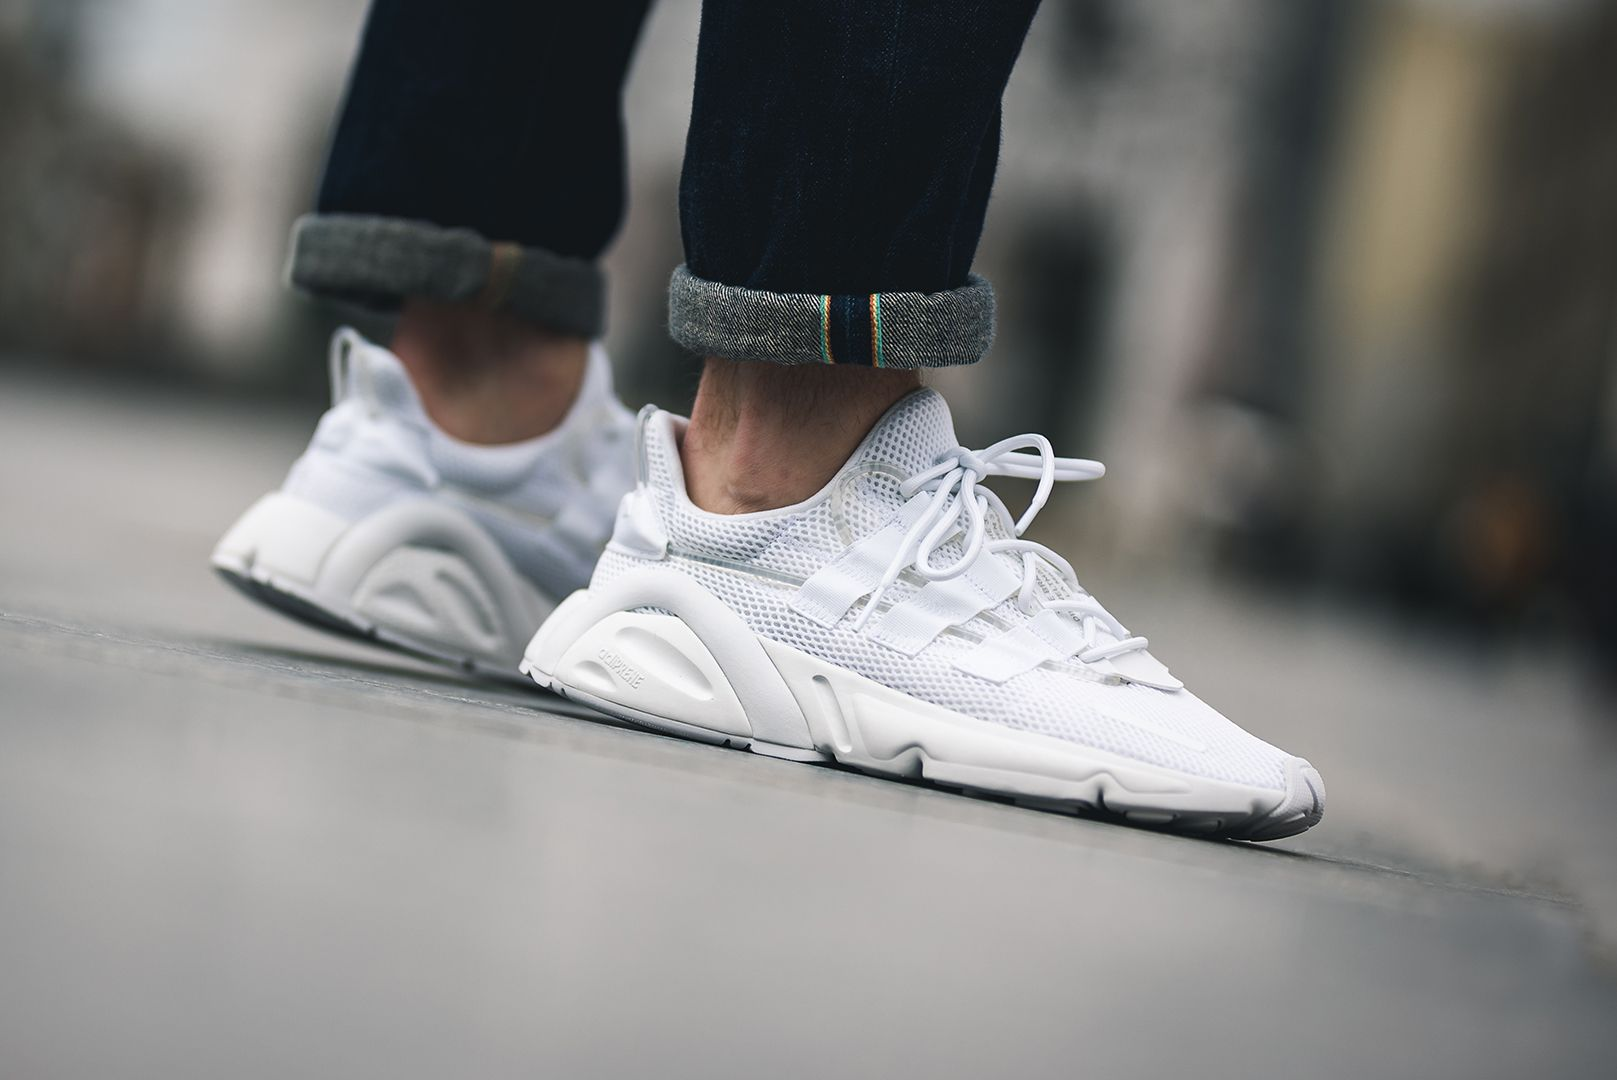 adidas Lxcon (white) - DB3393 | Nice White Kicks in 2019 ...